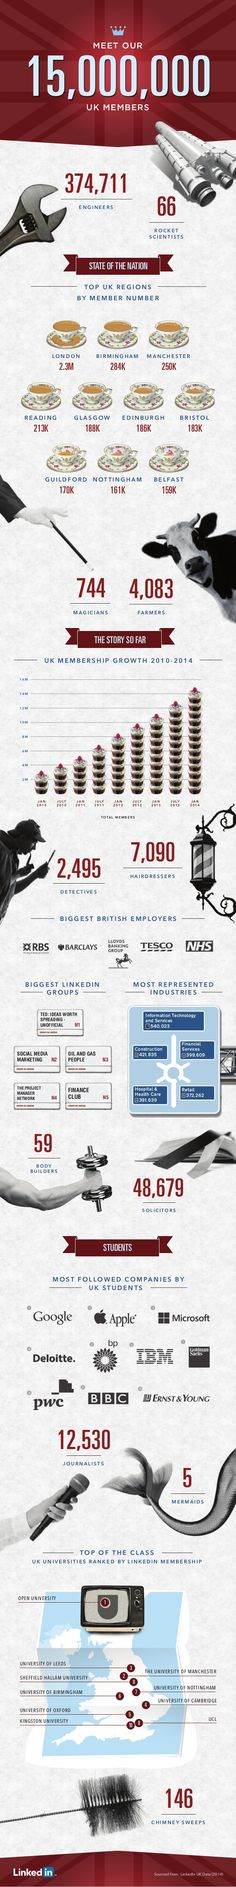 15 Million LinkedIn Members in UK by LinkedIn via slideshare